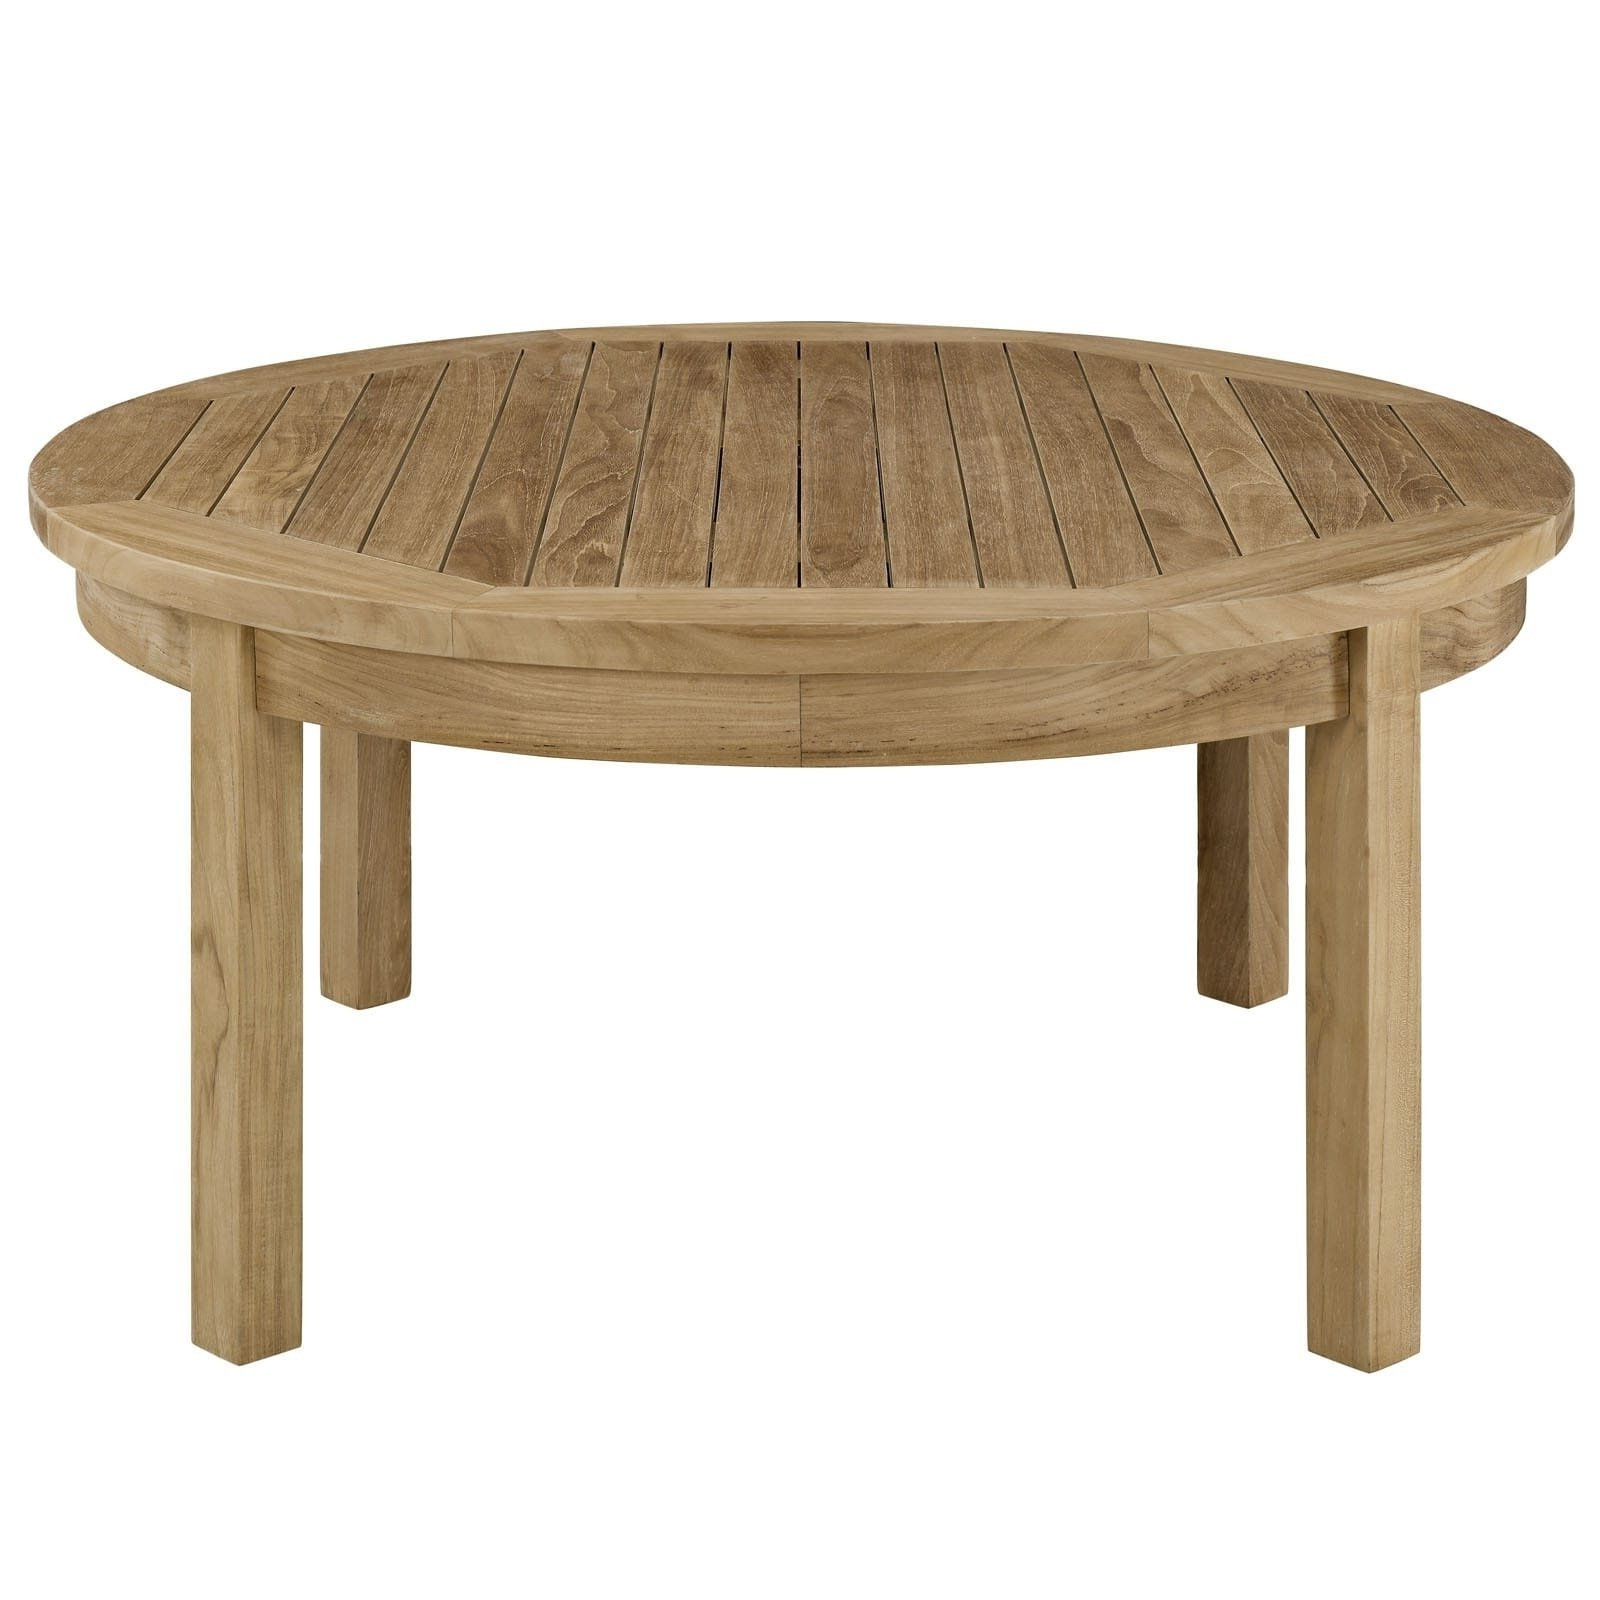 Current Shop Oliver & James Detaille Outdoor Round Teak Coffee Table – On In Round Teak Coffee Tables (View 5 of 20)